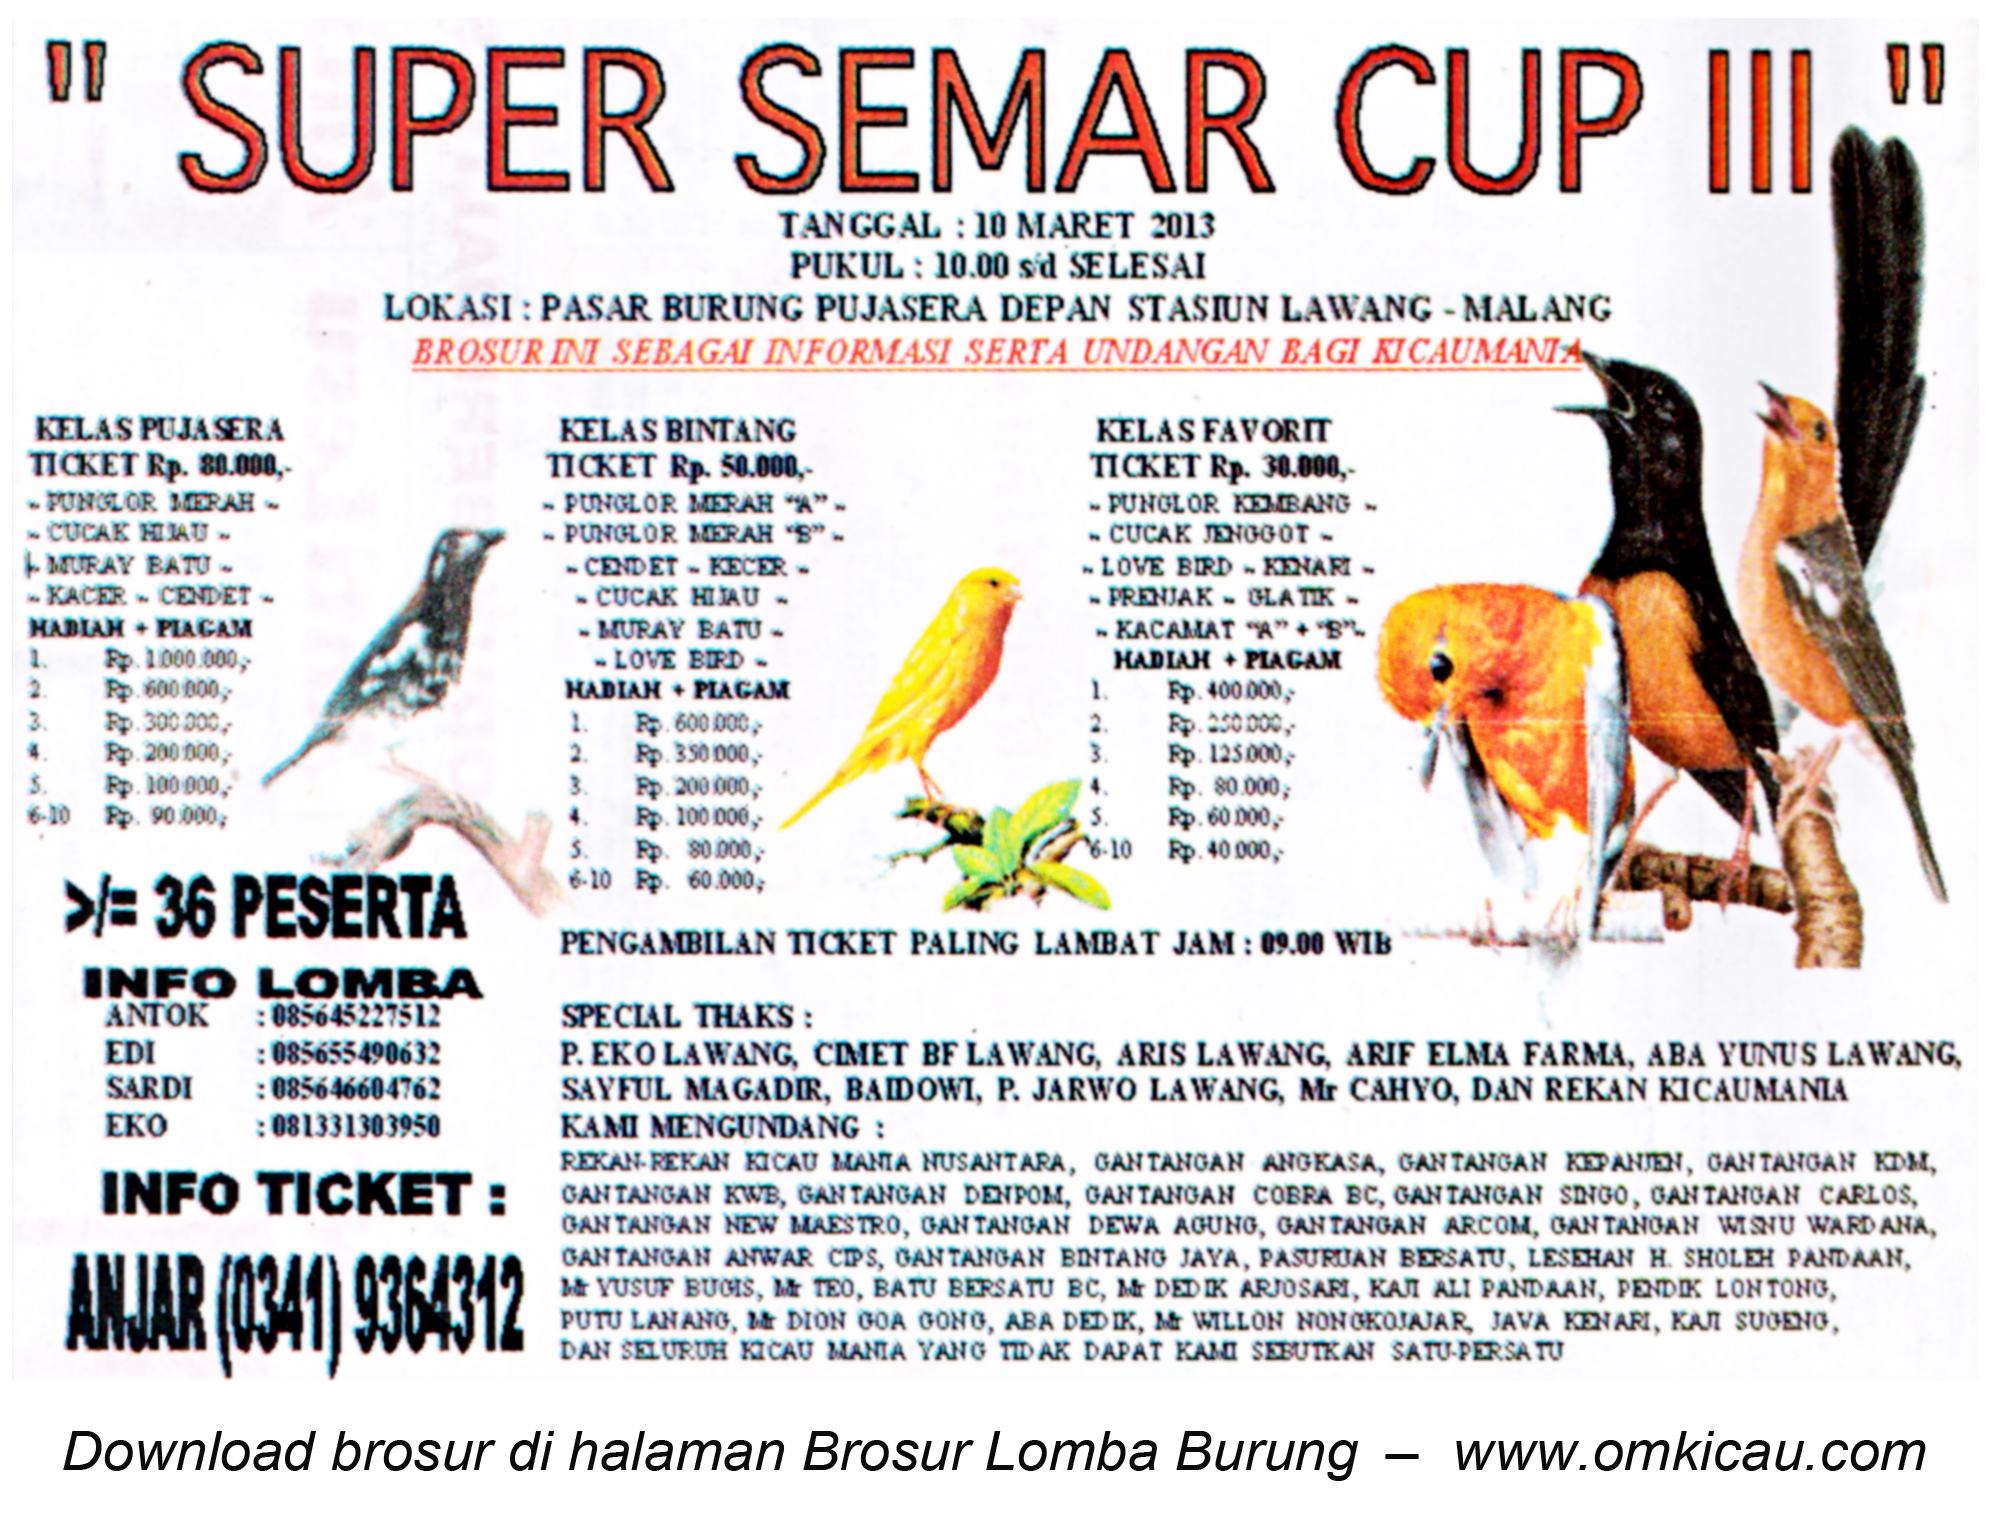 brosur-lomba-supersemar-cup